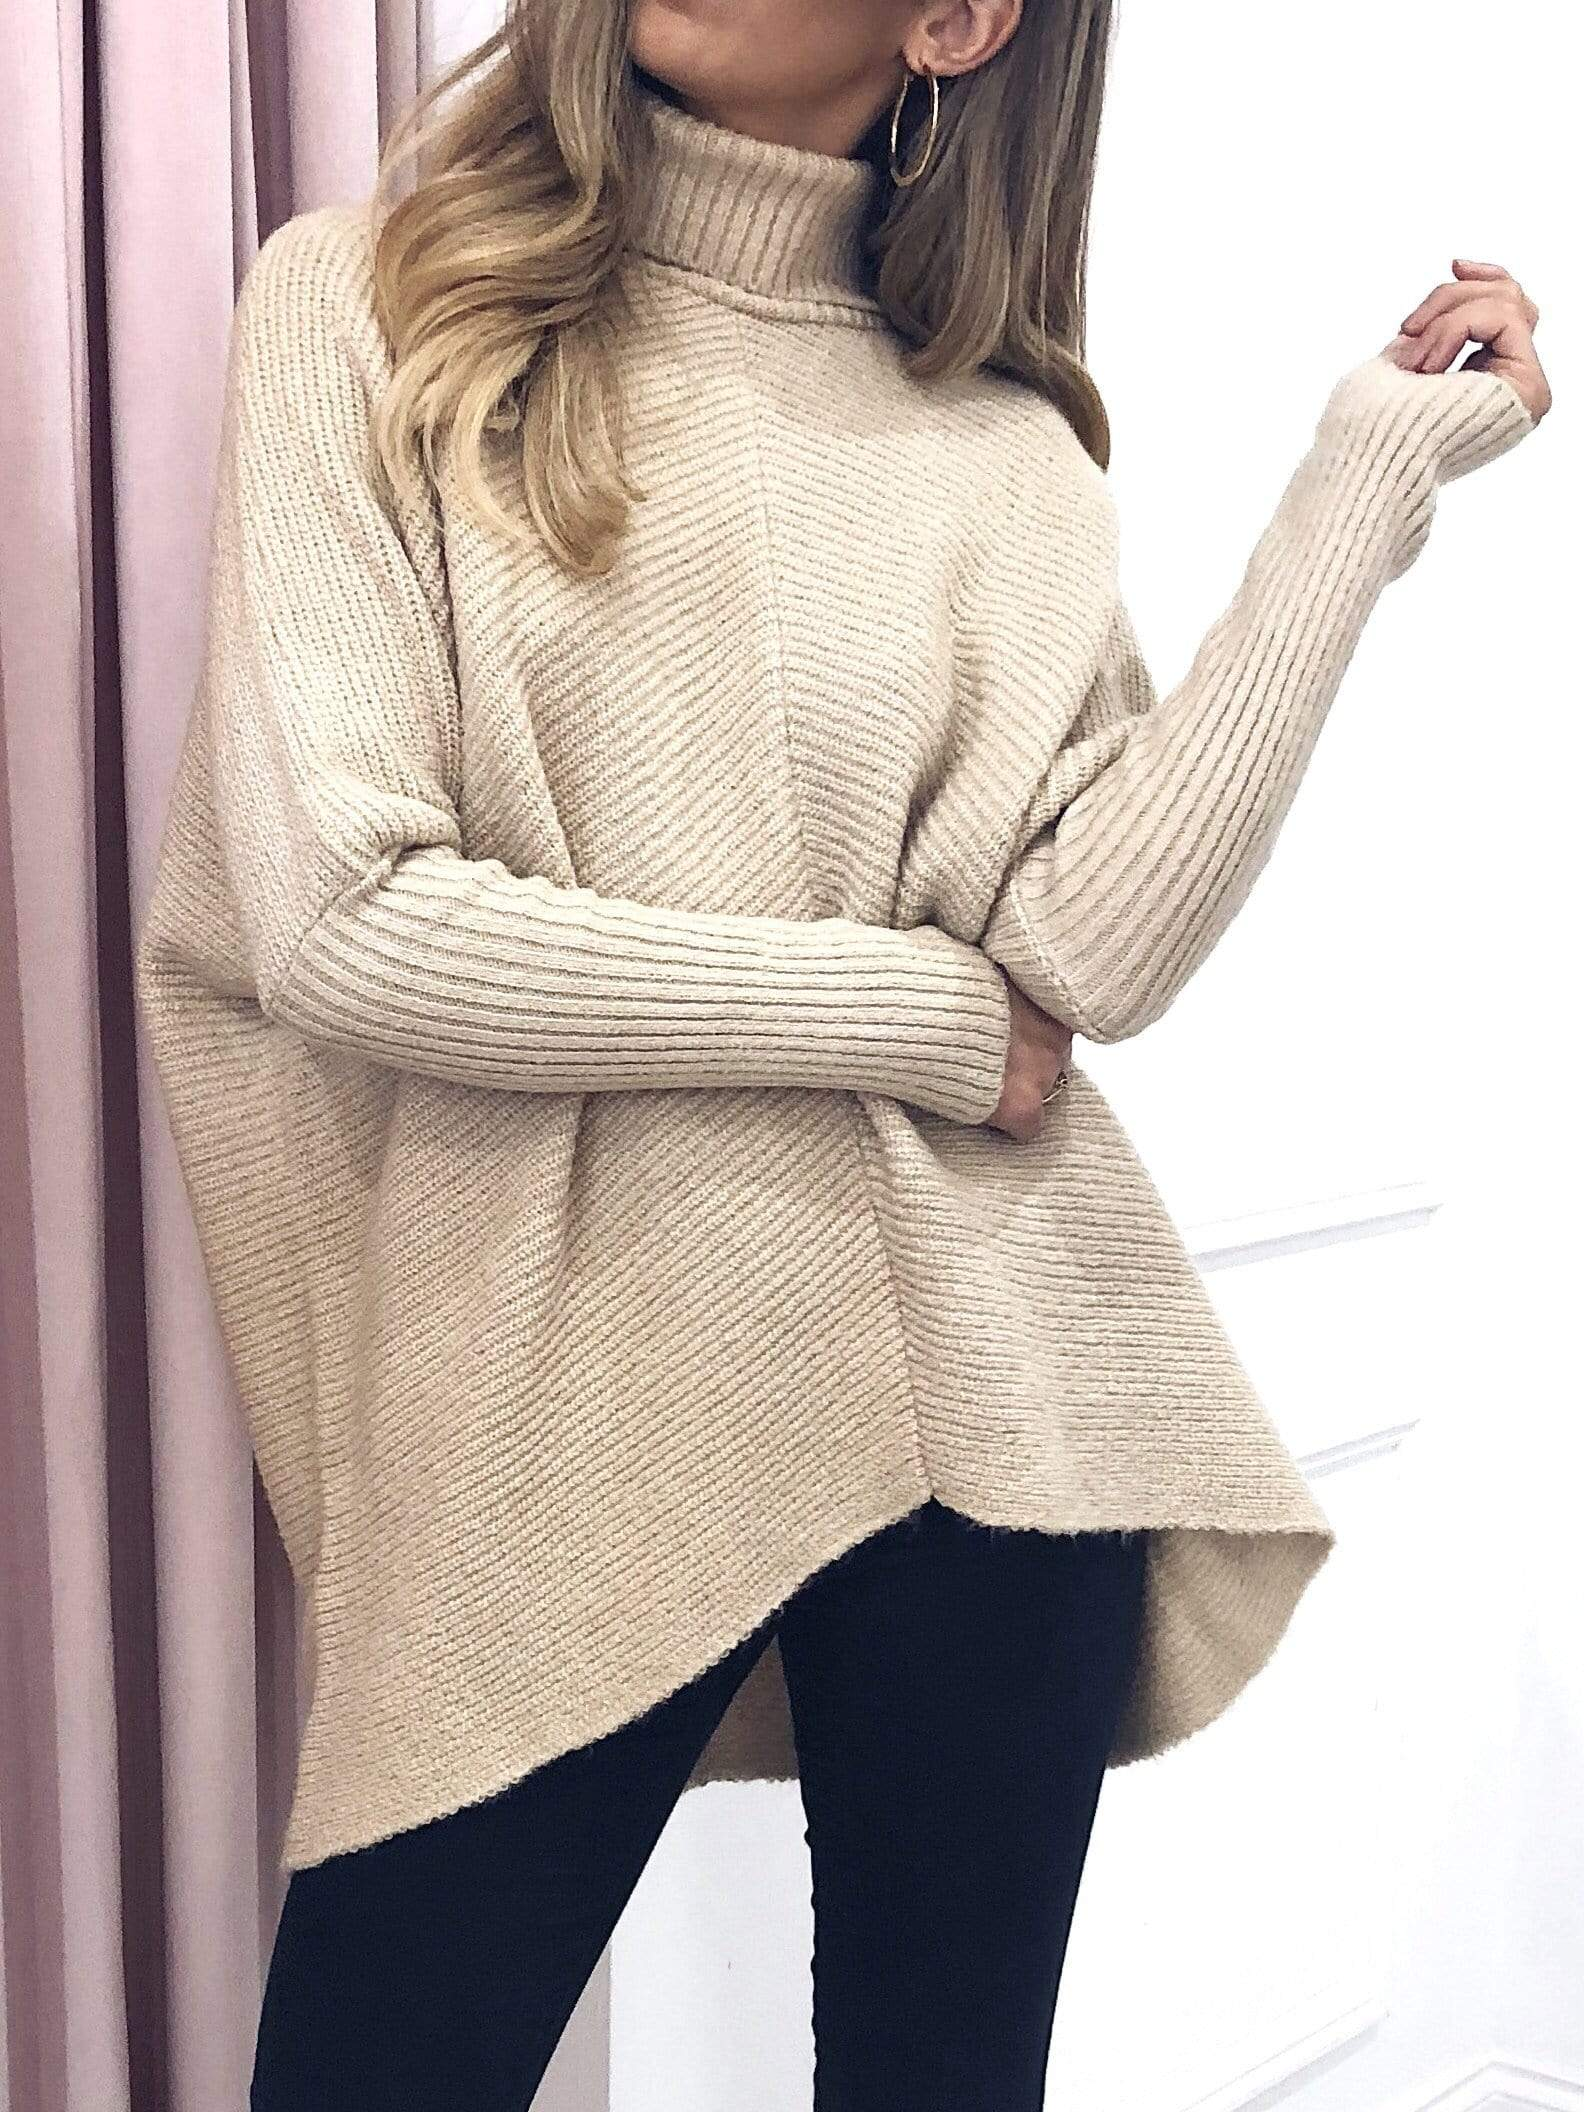 Callie Knit Jumper - Beige, Top - Pretty Lavish